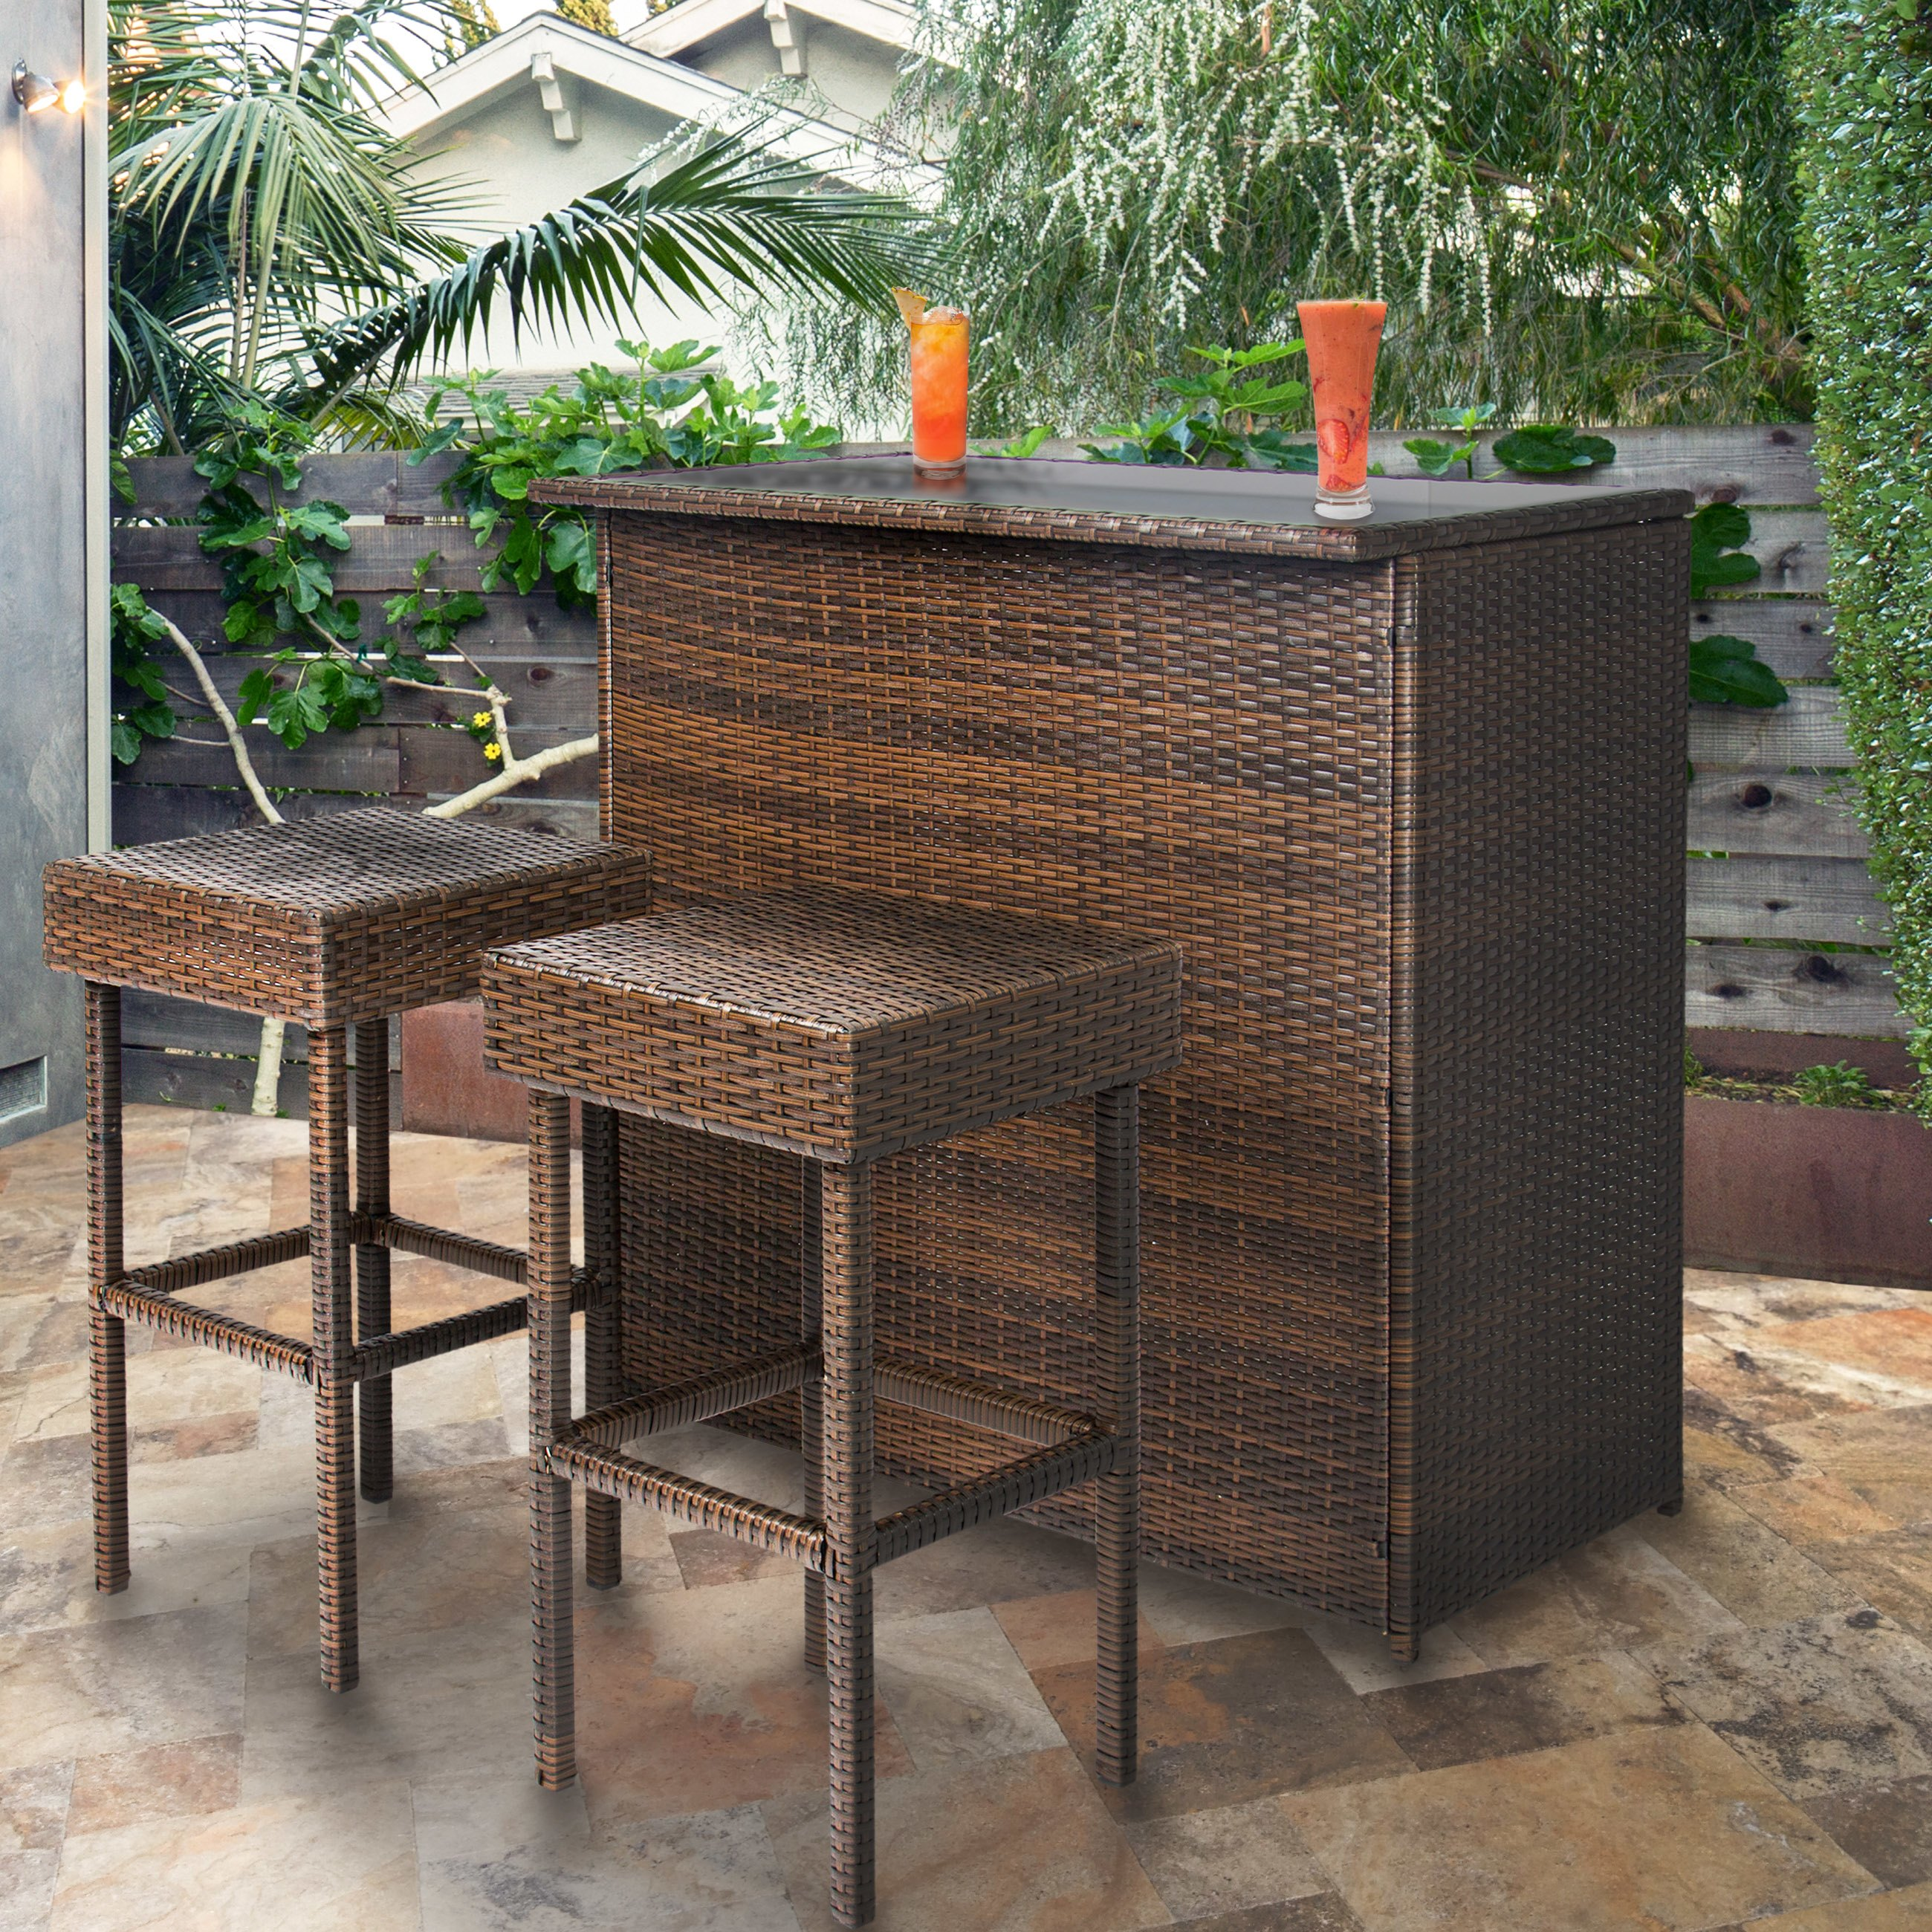 bestchoiceproducts best choice products wicker bar set patio middletown accent table outdoor backyard stools rattan garden small end tables target furniture companies console